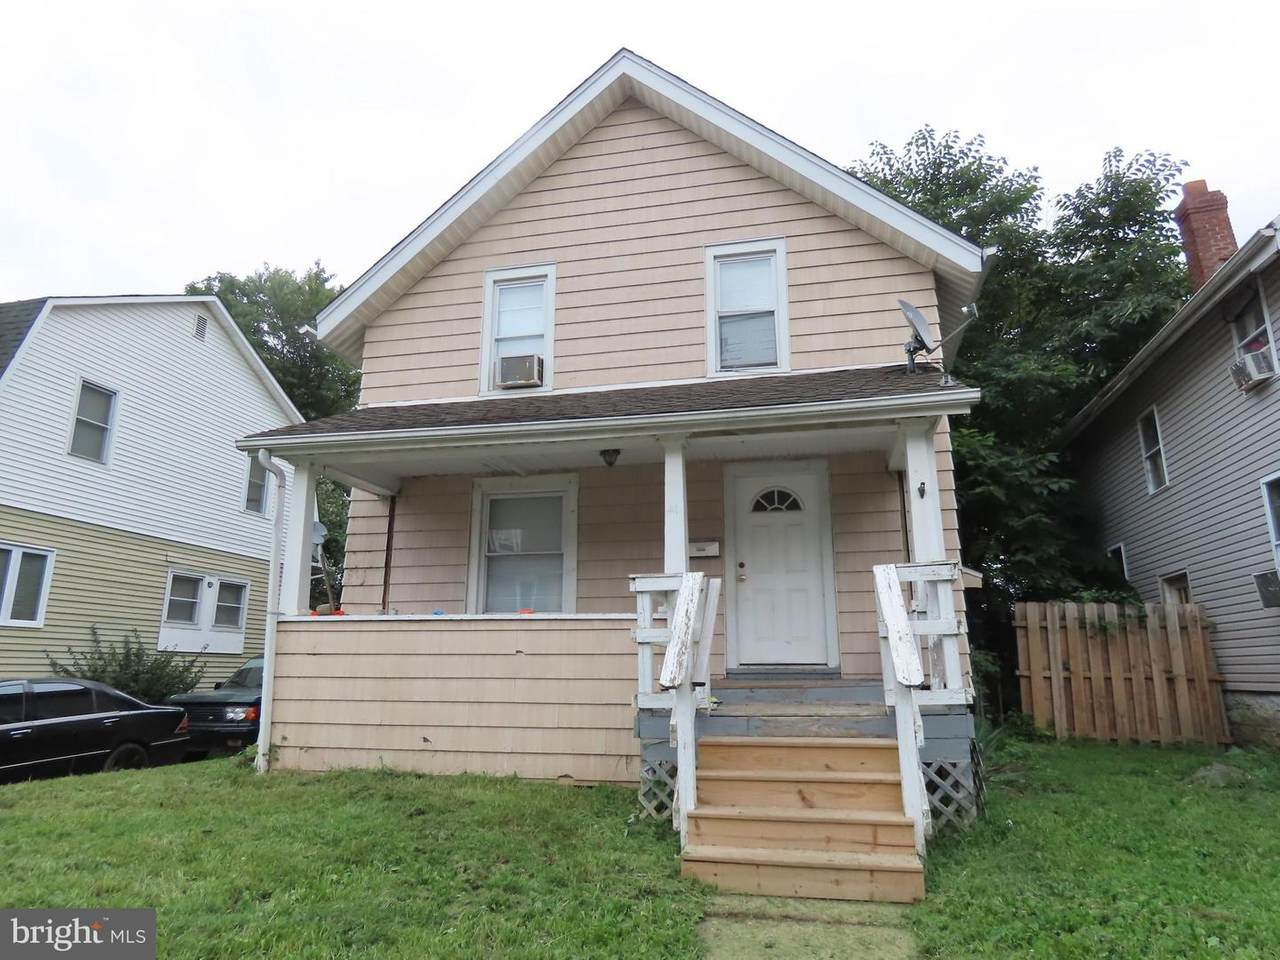 41 Colby Avenue - Photo 1